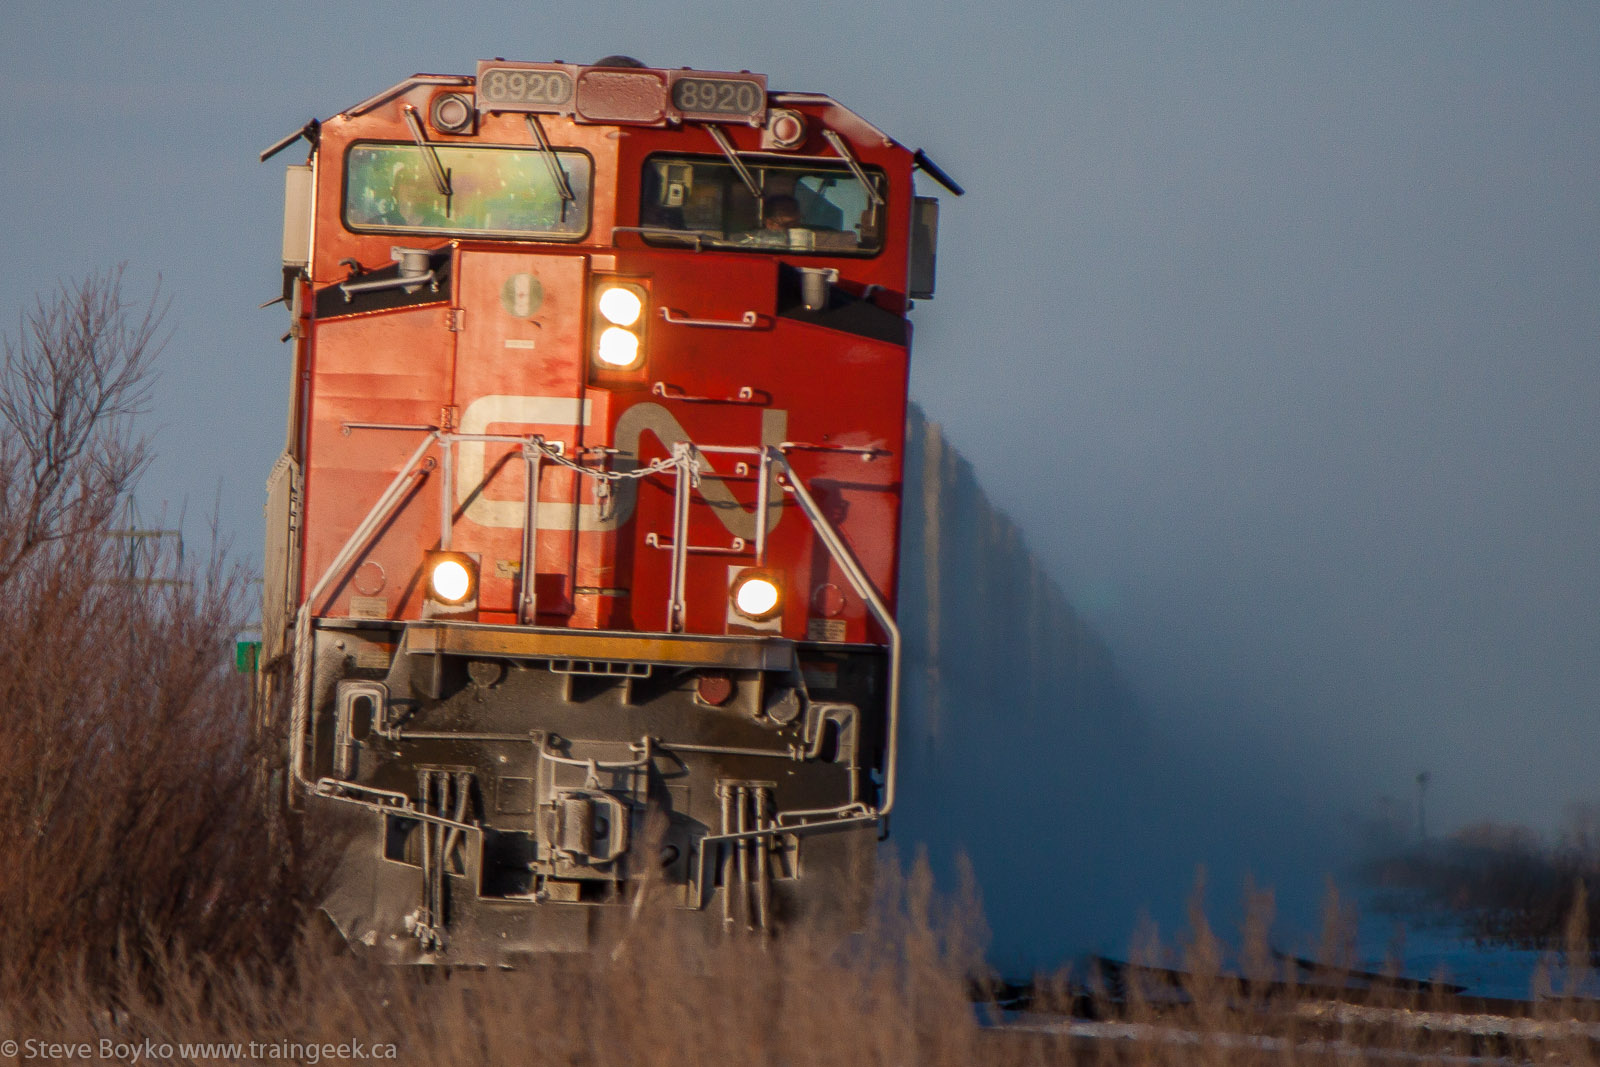 CN 8920 near Winnipeg, MB 2013/01/01